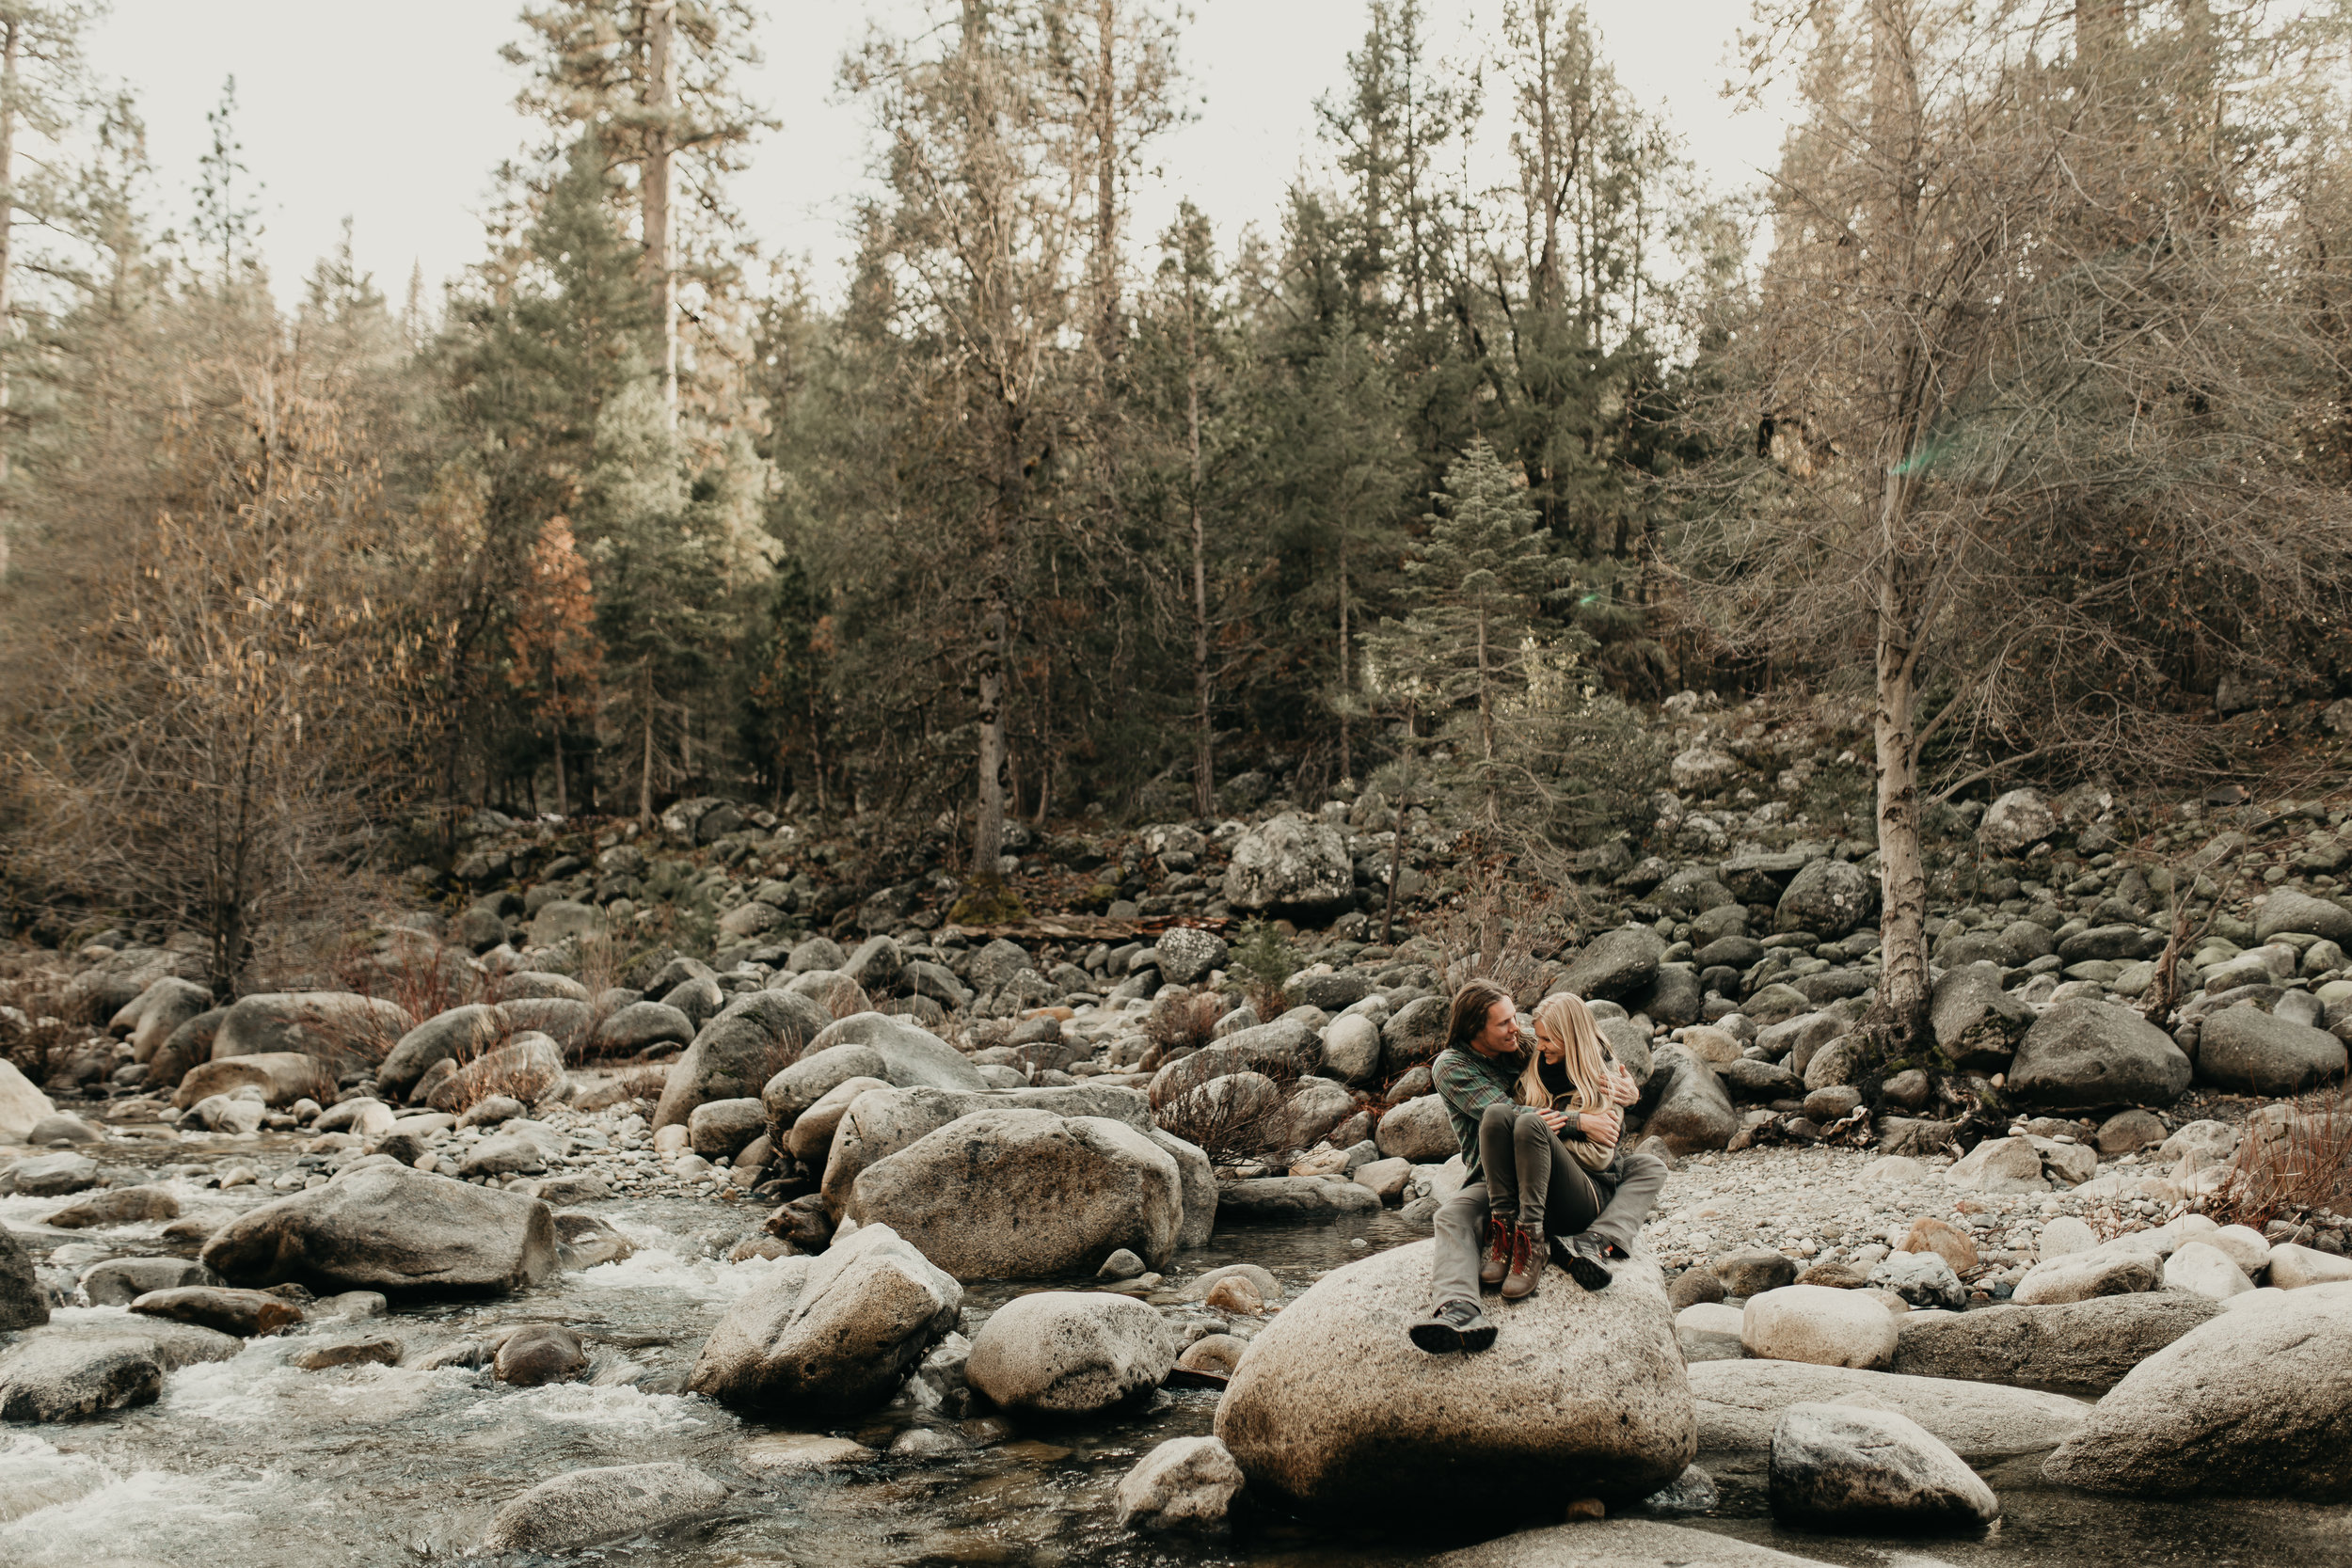 nicole-daacke-photography-yosemite-riverside-adventurous-engagement-photos-in-yosemite-national-park-elopement-photographer-weddings-travel-destination-wedding-eloping-elope-pine-forest-16.jpg